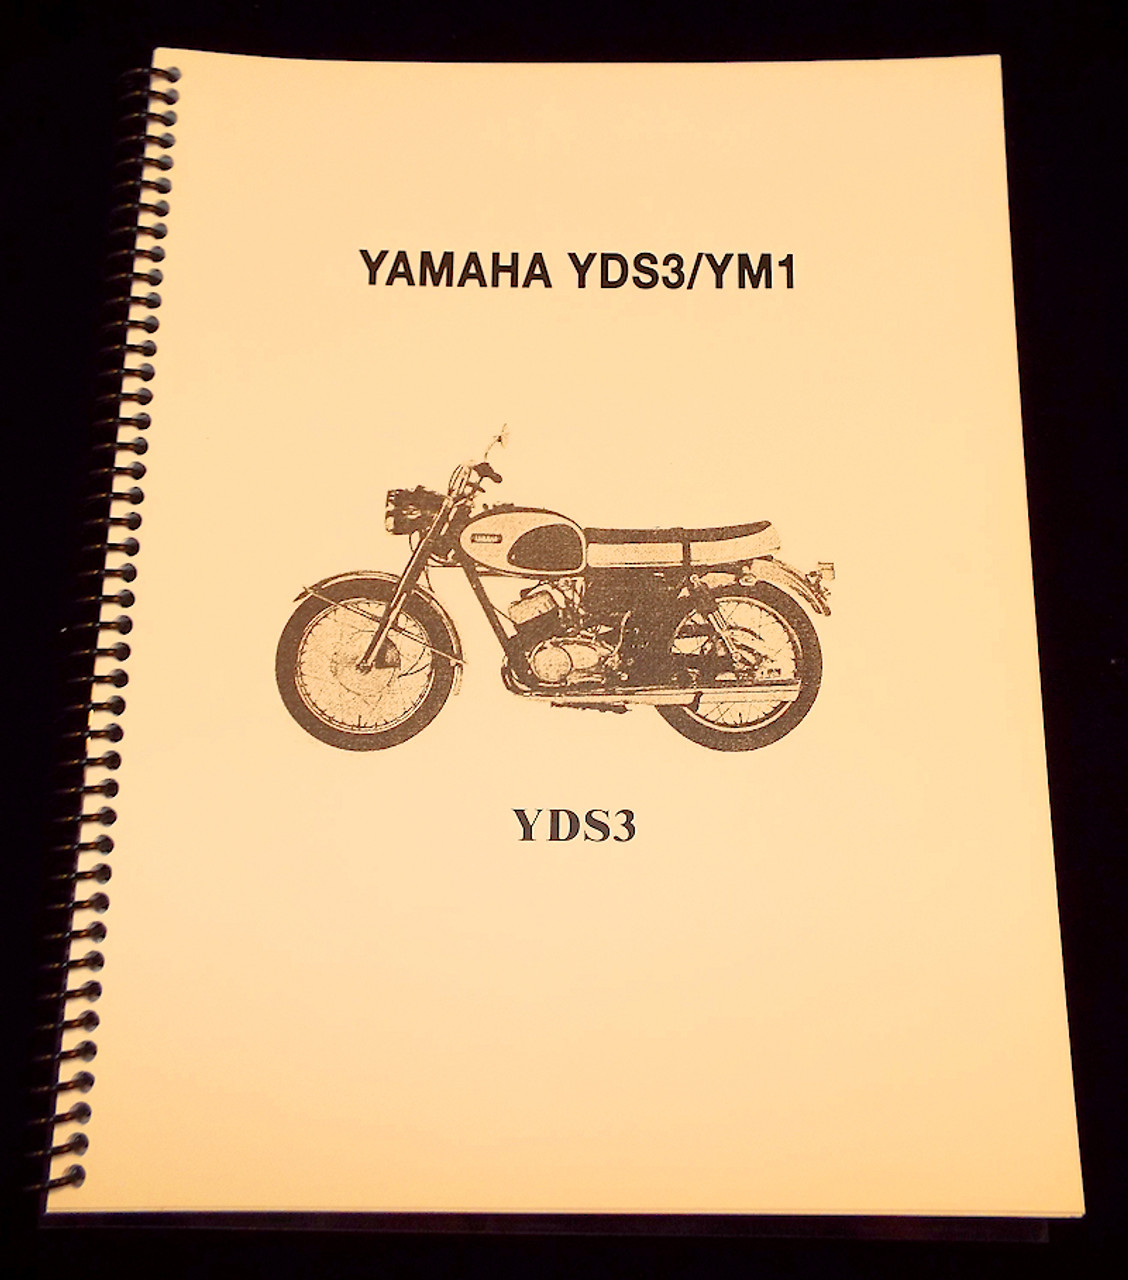 yamaha yds3 ym1 parts manual hvc200131 yds3 hvccycle rh hvccycle net Nissan UD 1800 Manual 1964 Ford Shop Manual Diagrams